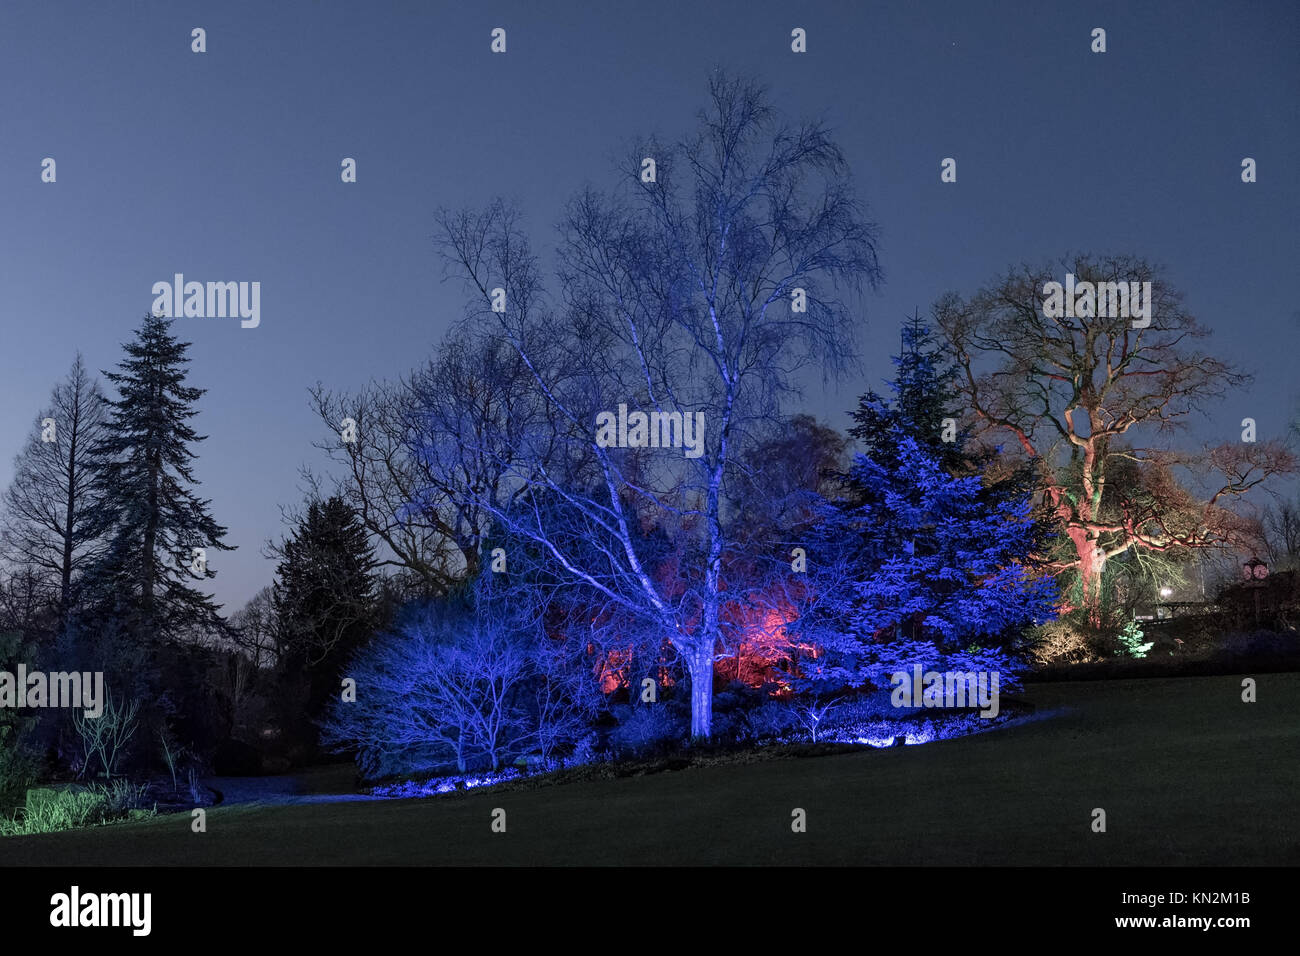 RHS Gardens Harlow Carr - Glow Winter Illuminations - Stock Image